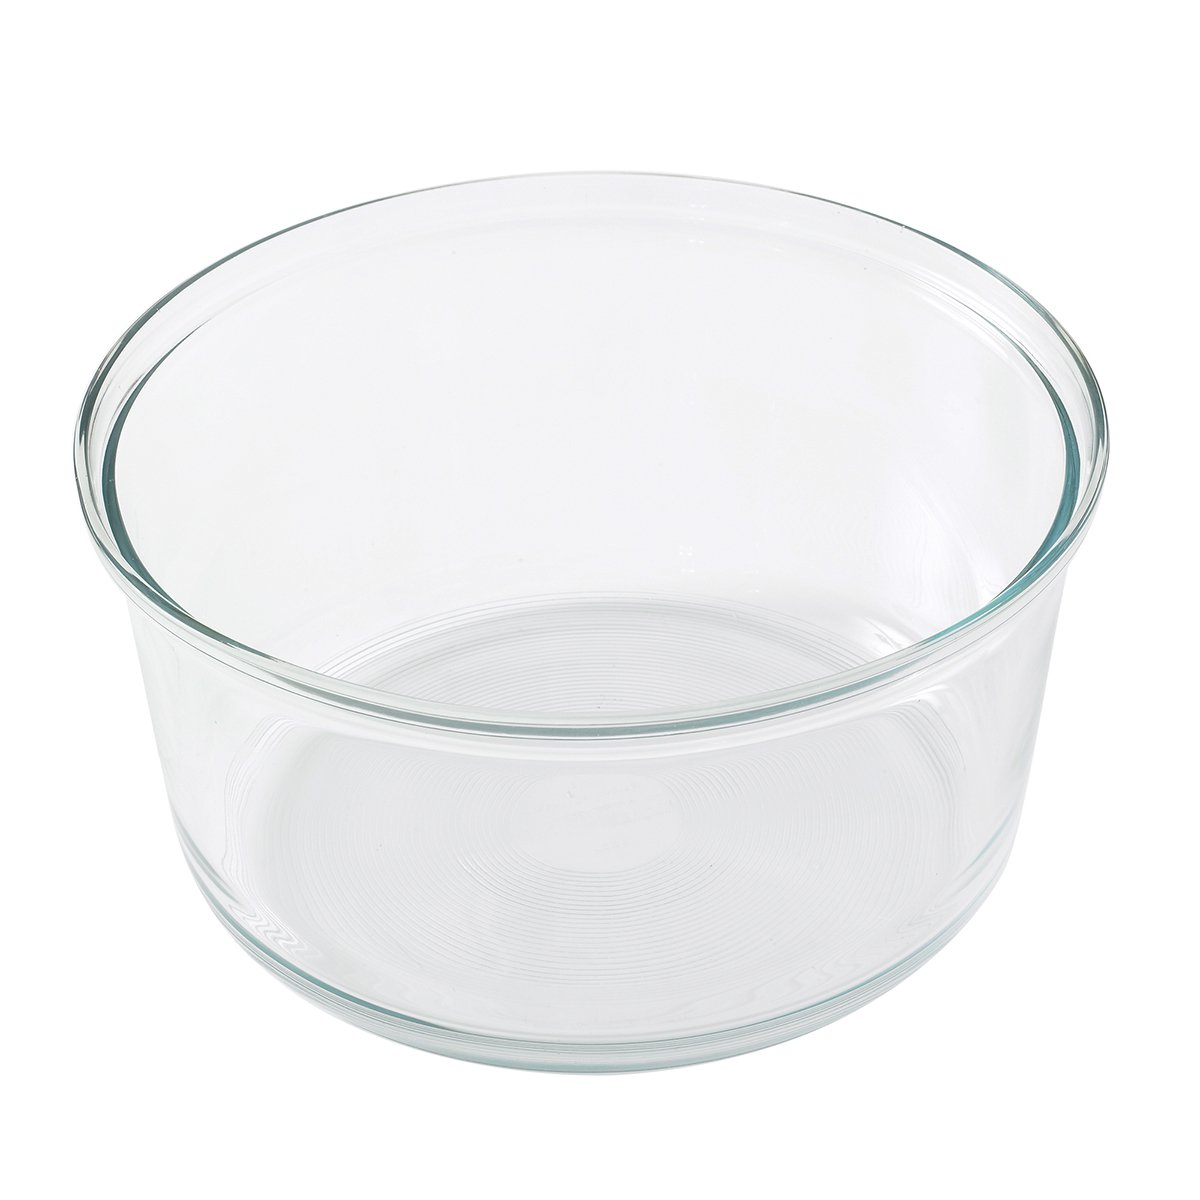 JML Replacement bowl for Halowave Oven image 1